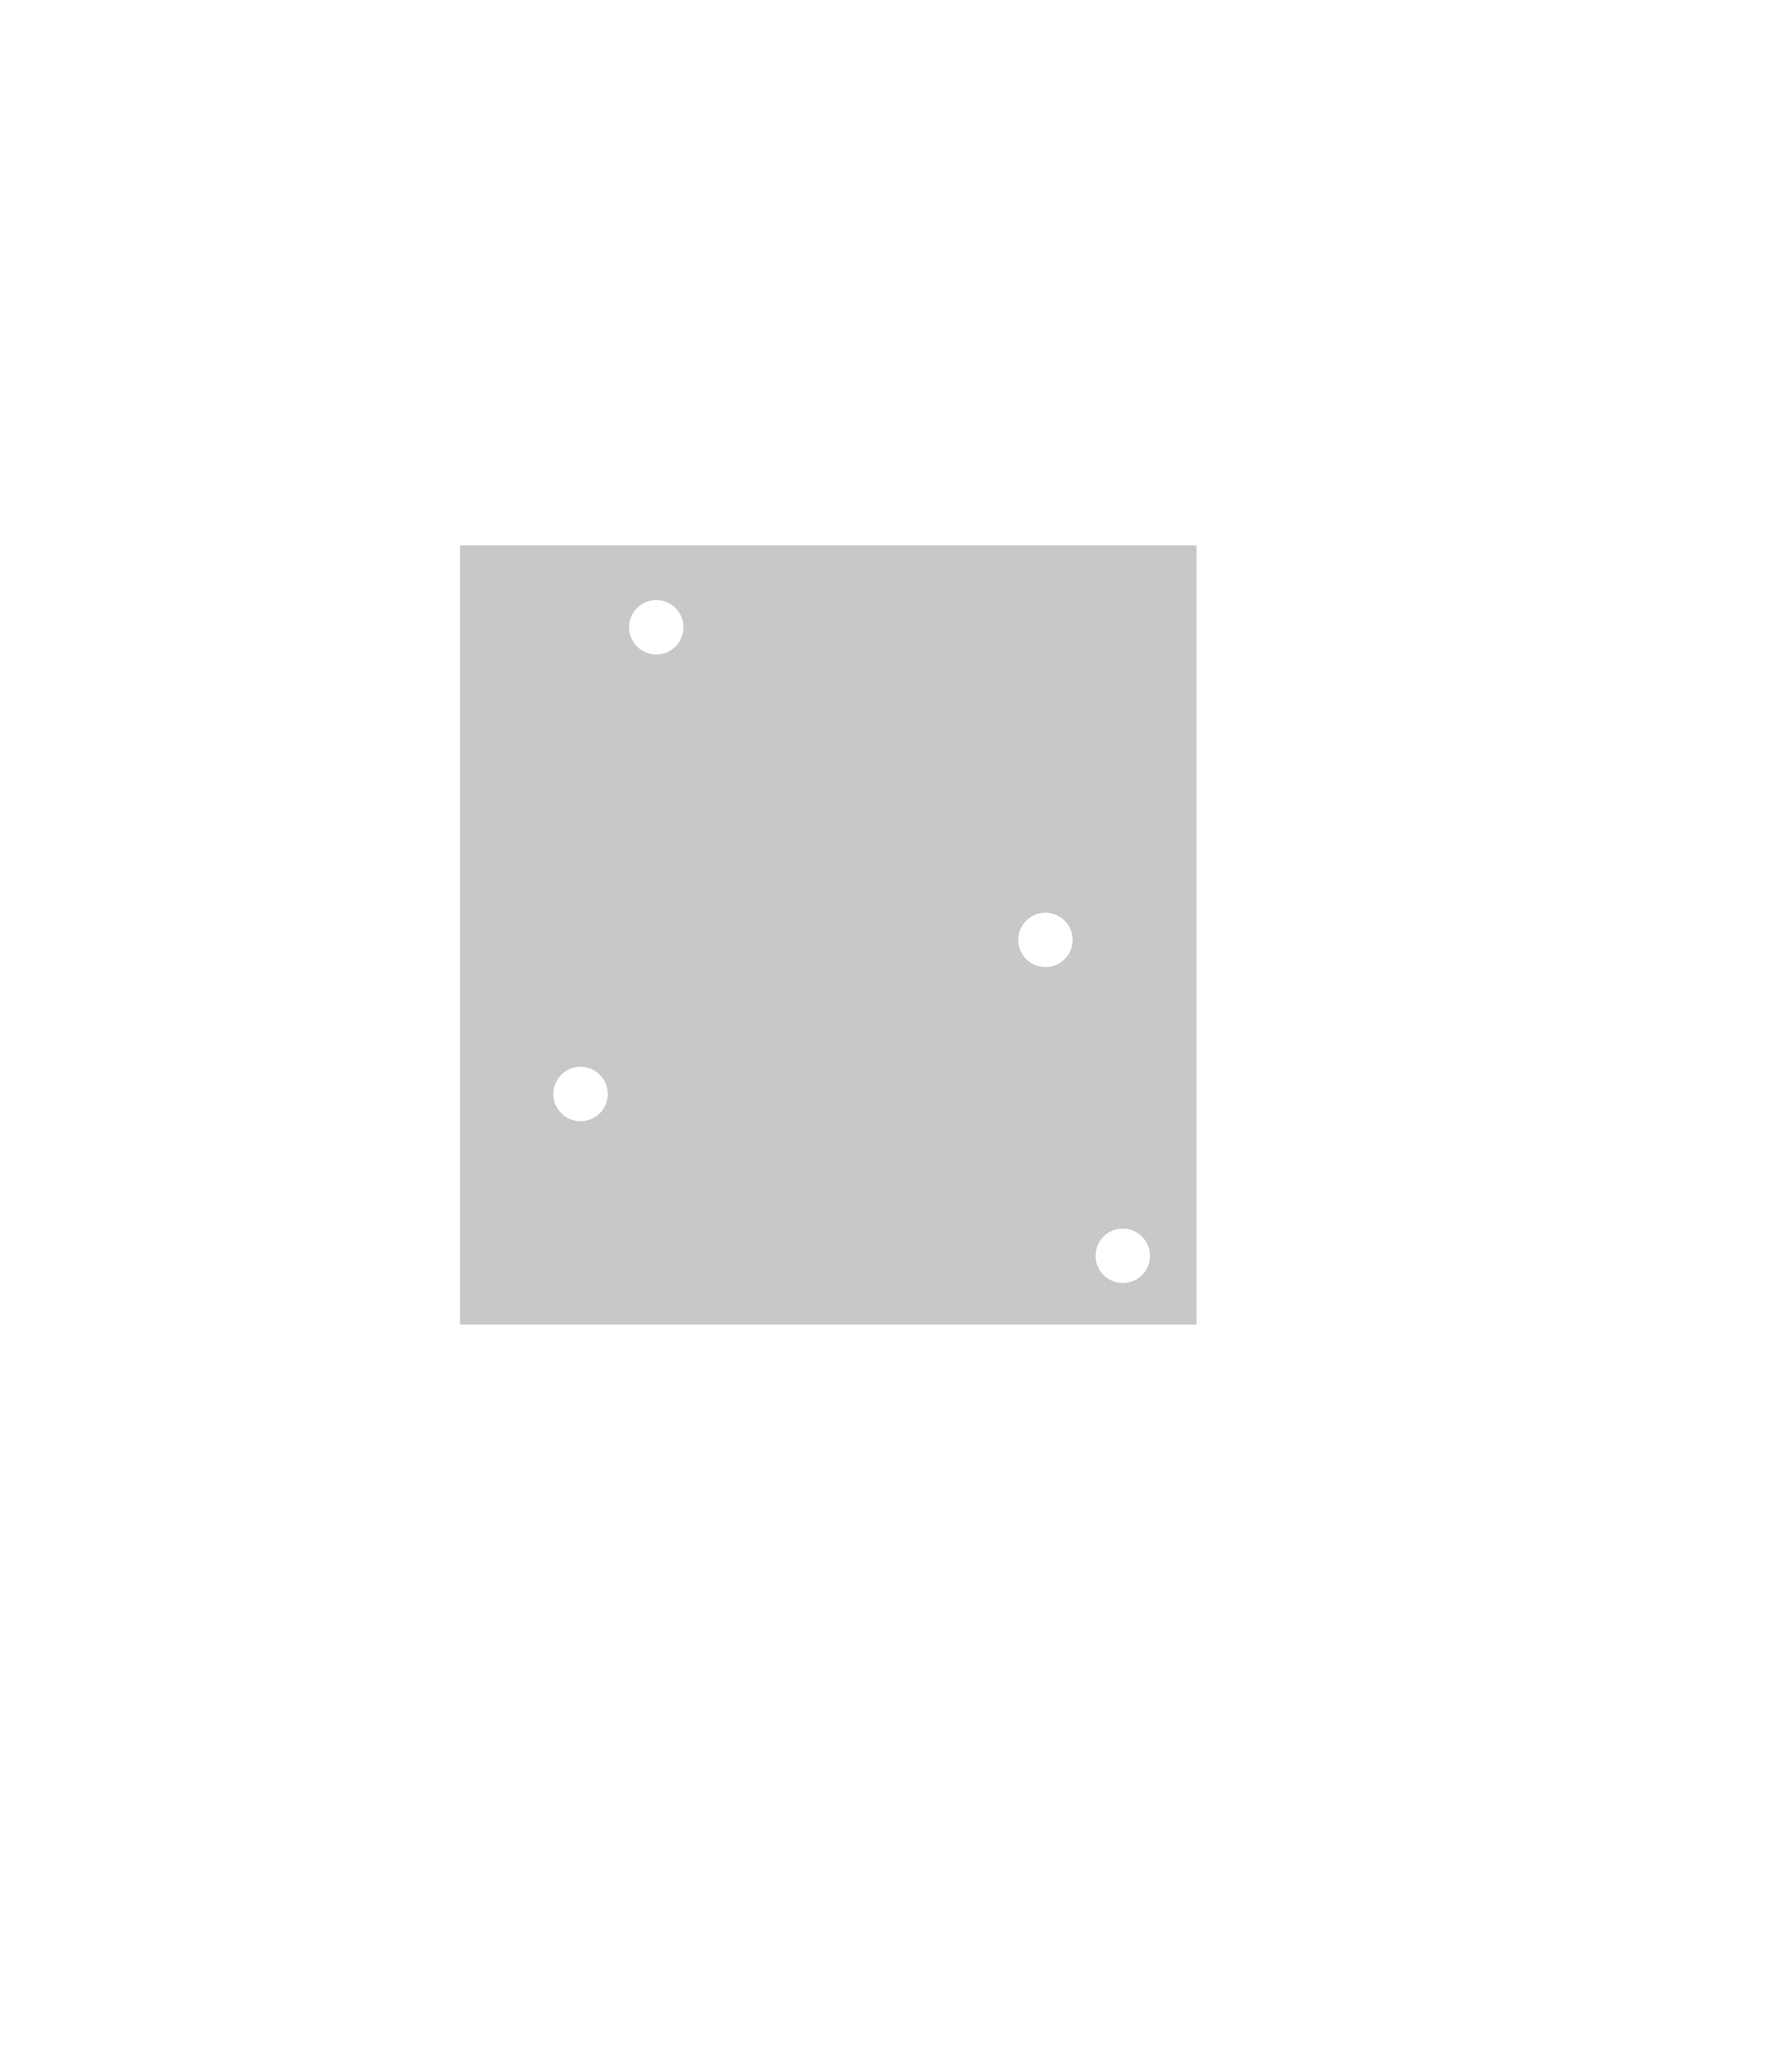 Figure 1: Discrepancy of a box is the difference between the expected and the actual number of points inside.